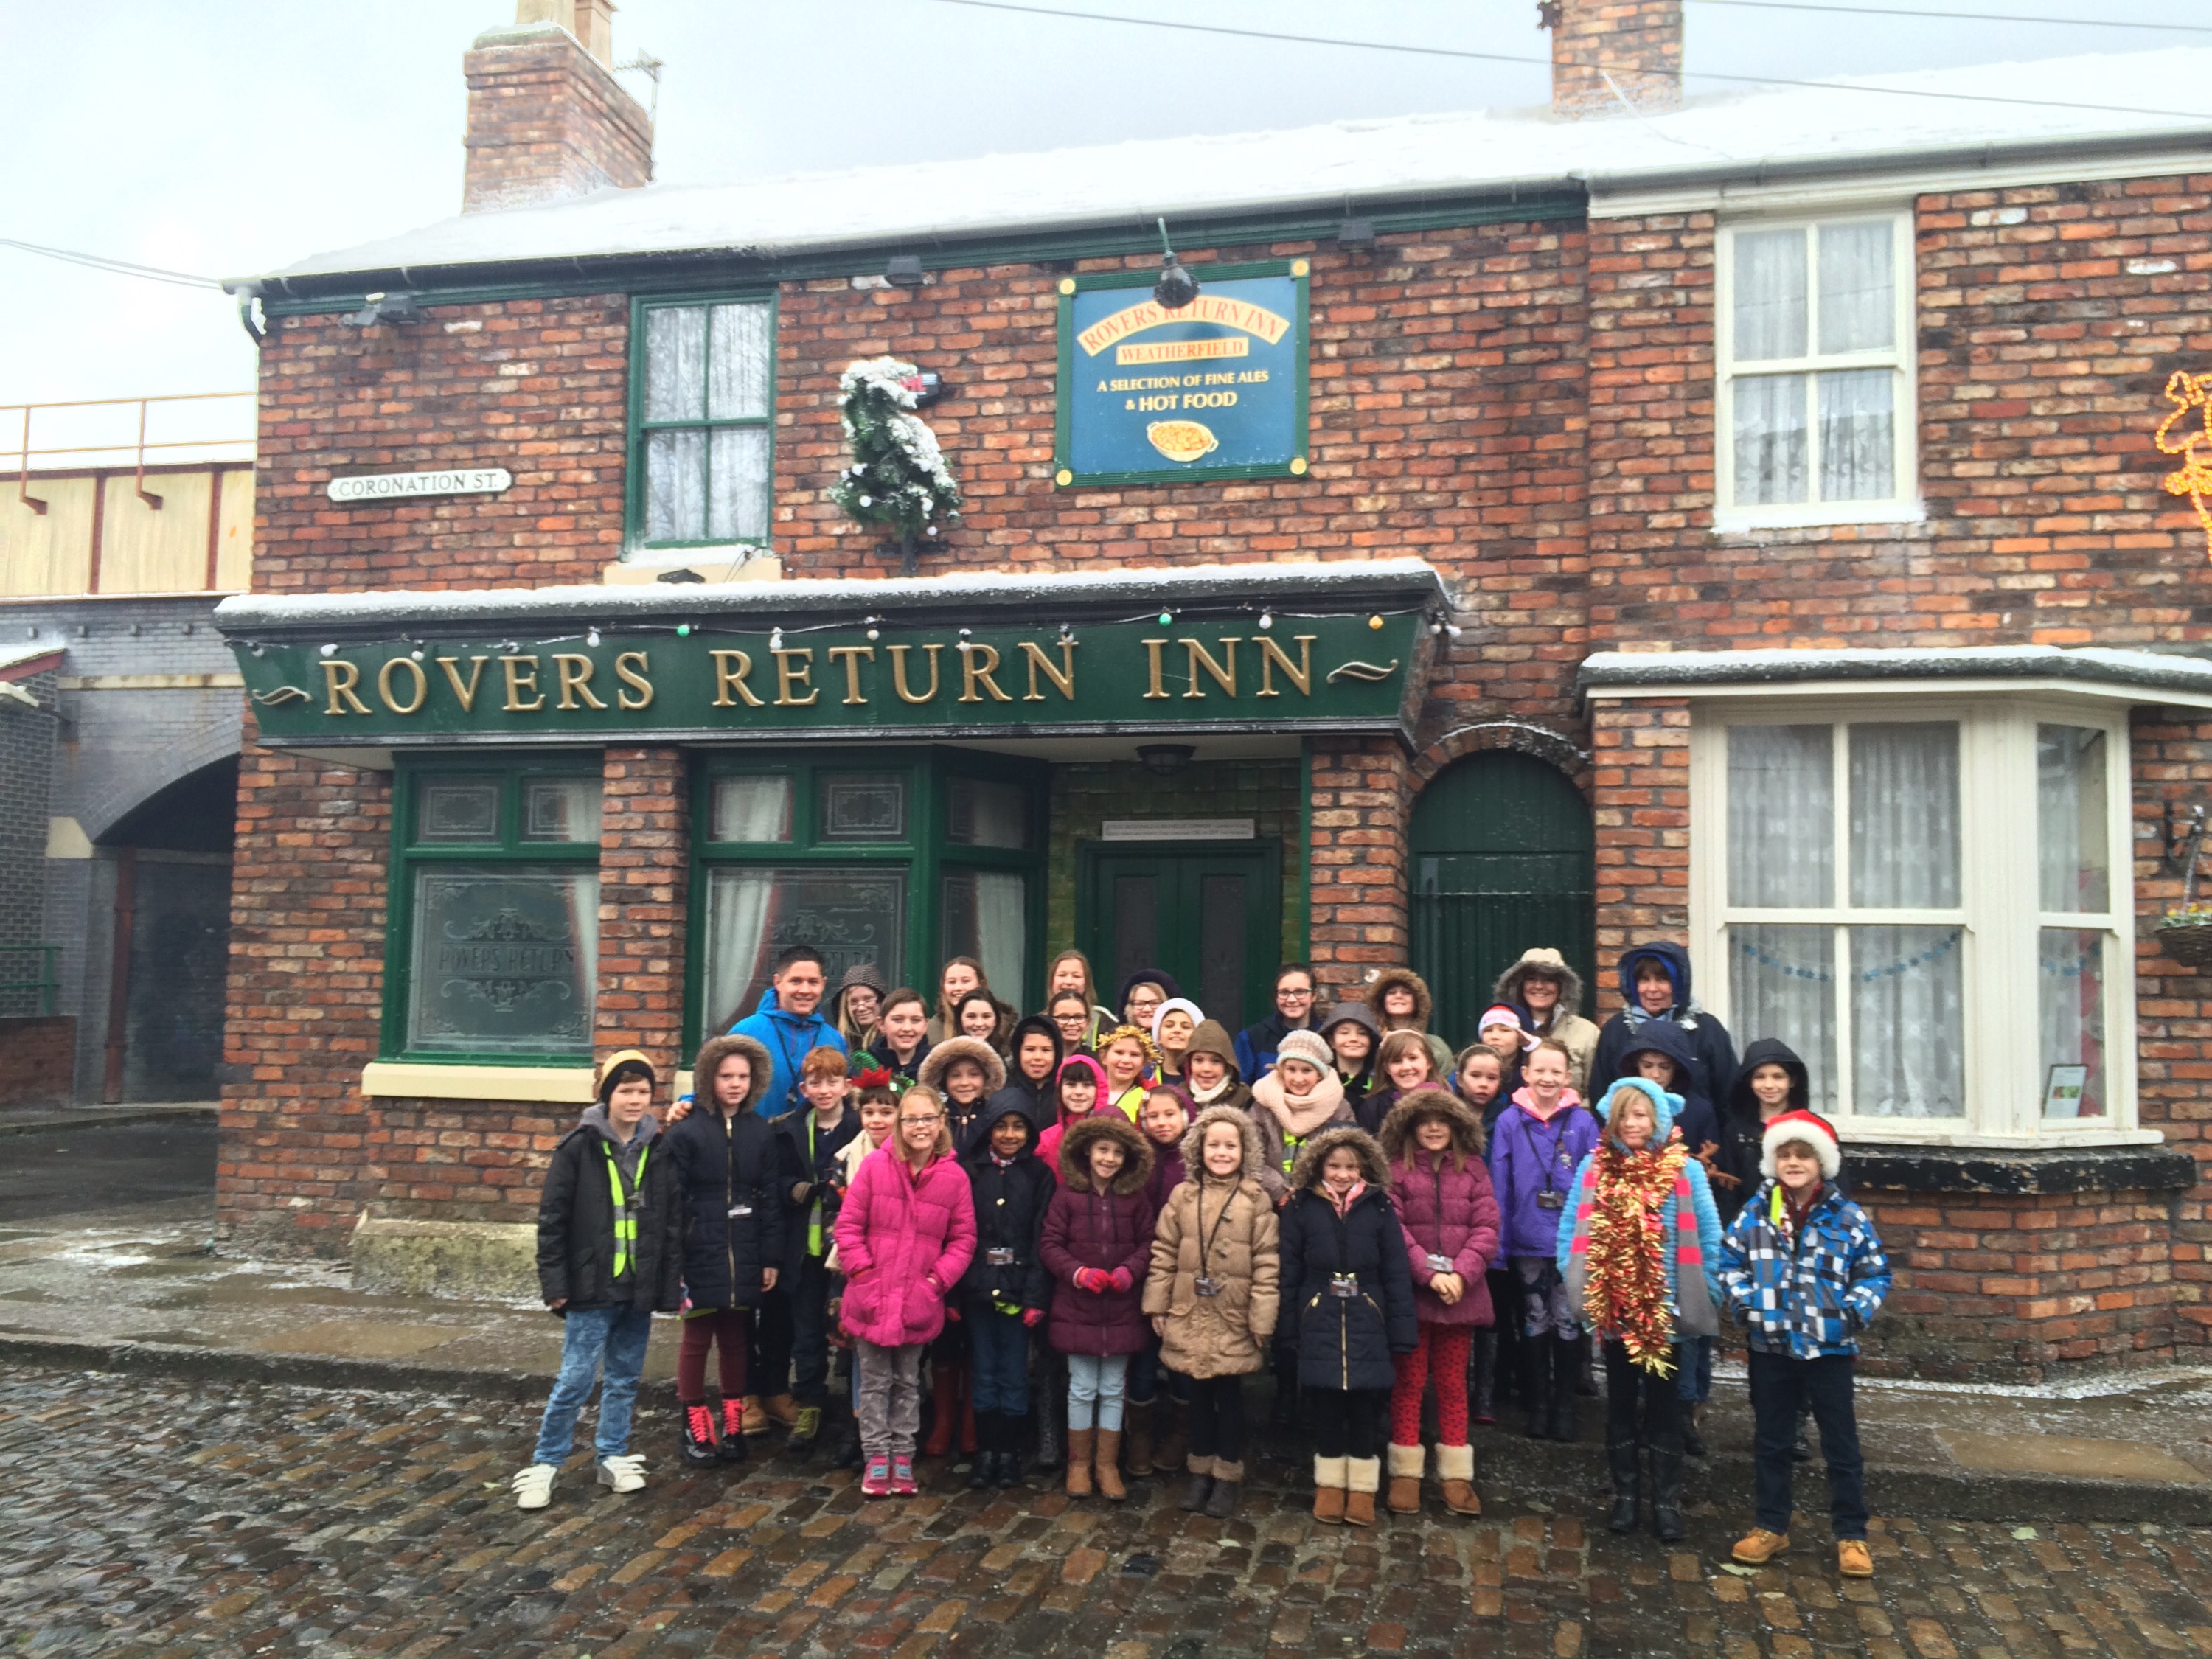 Coronation Street – Choir – Dec 14